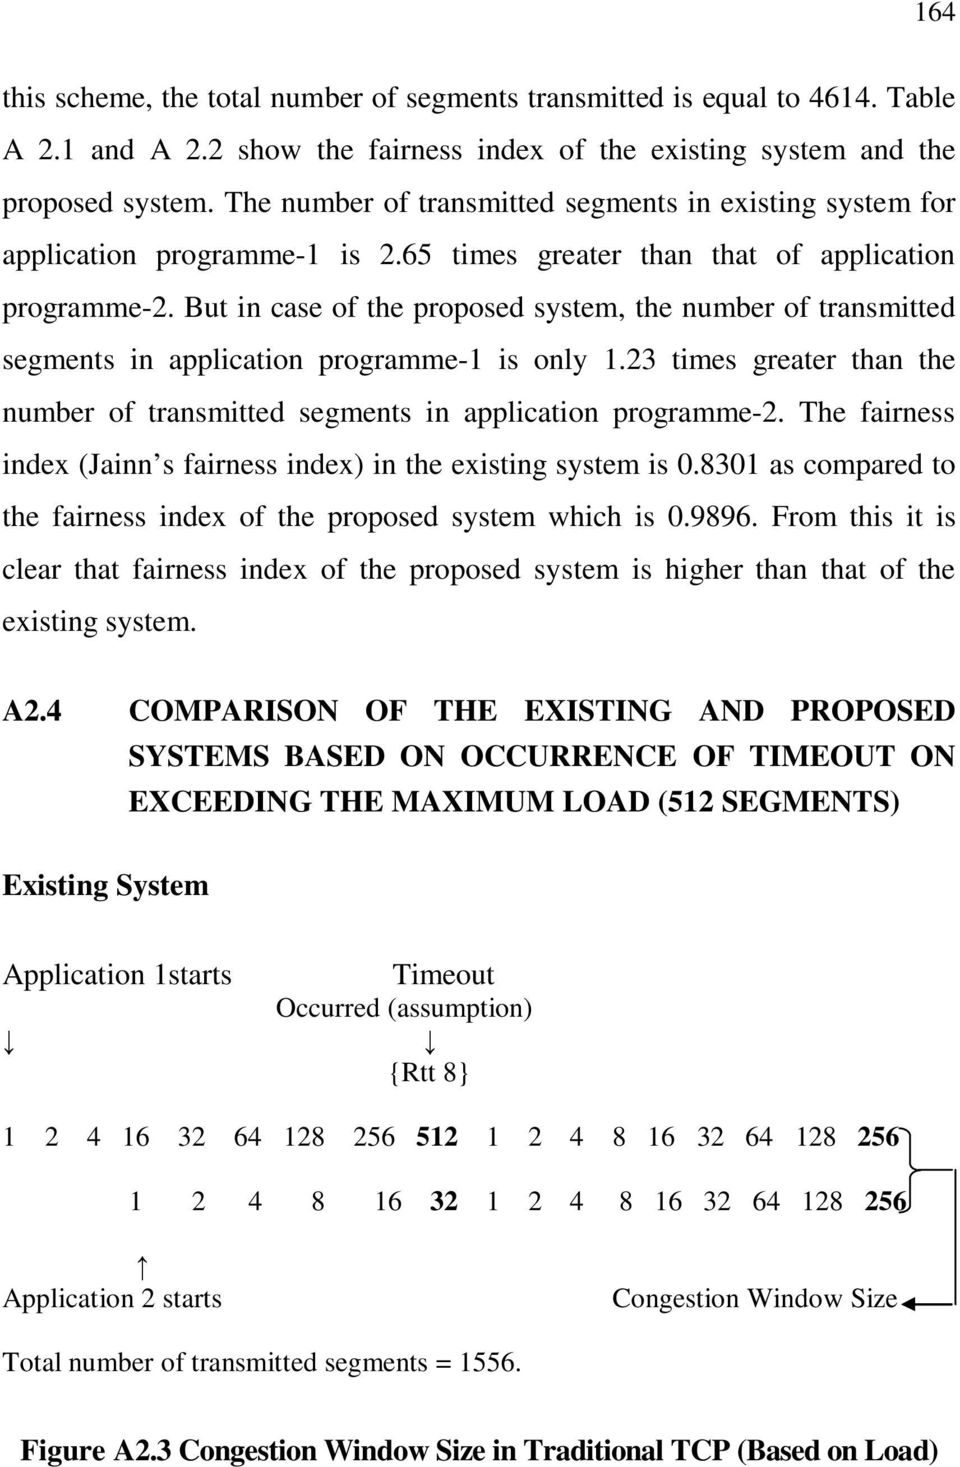 But in case of the proposed system, the number of transmitted segments in application programme-1 is only 1.23 times greater than the number of transmitted segments in application programme-2.